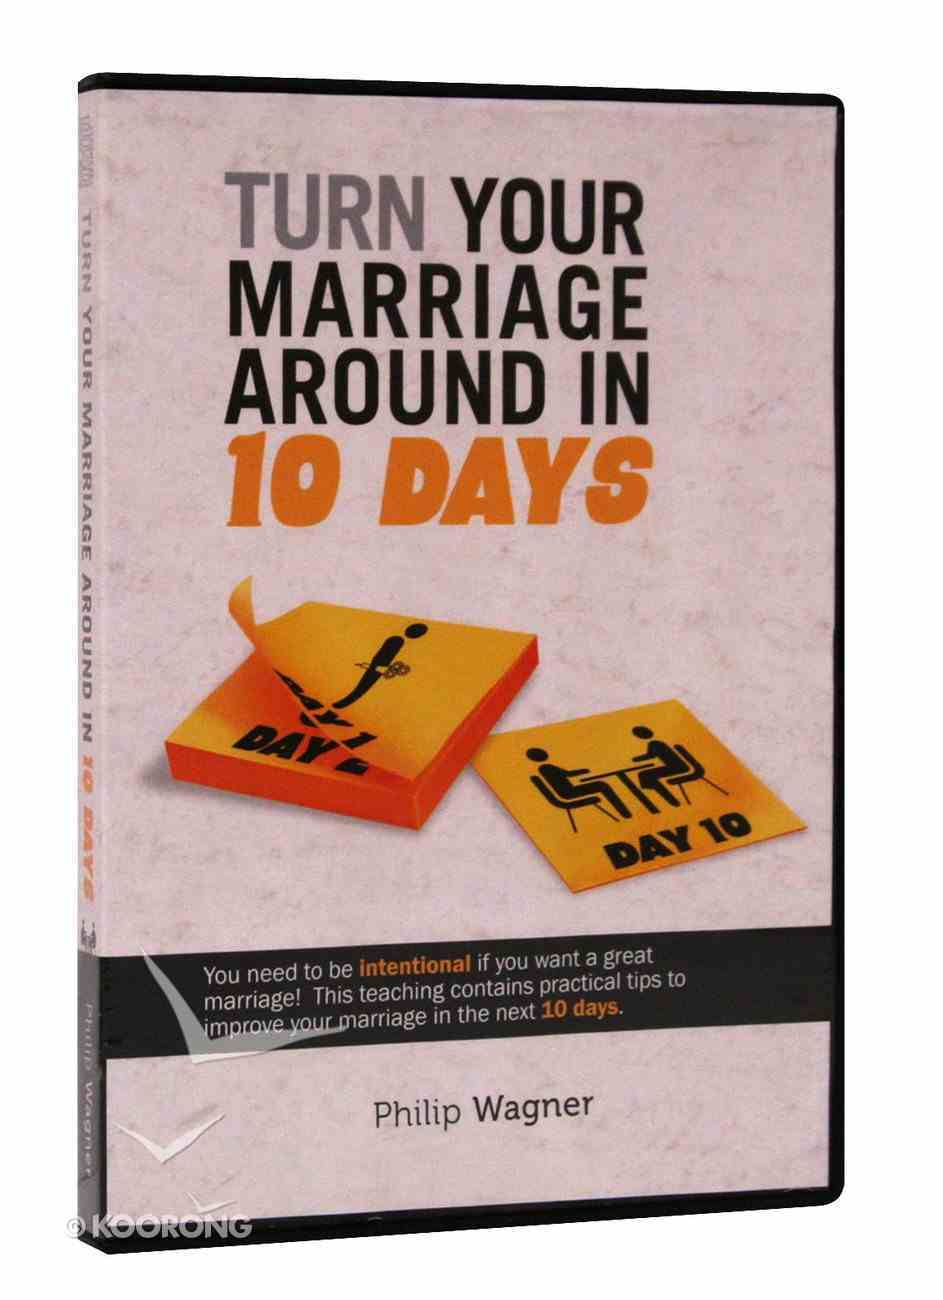 Turn Your Marriage Around in 10 Days CD